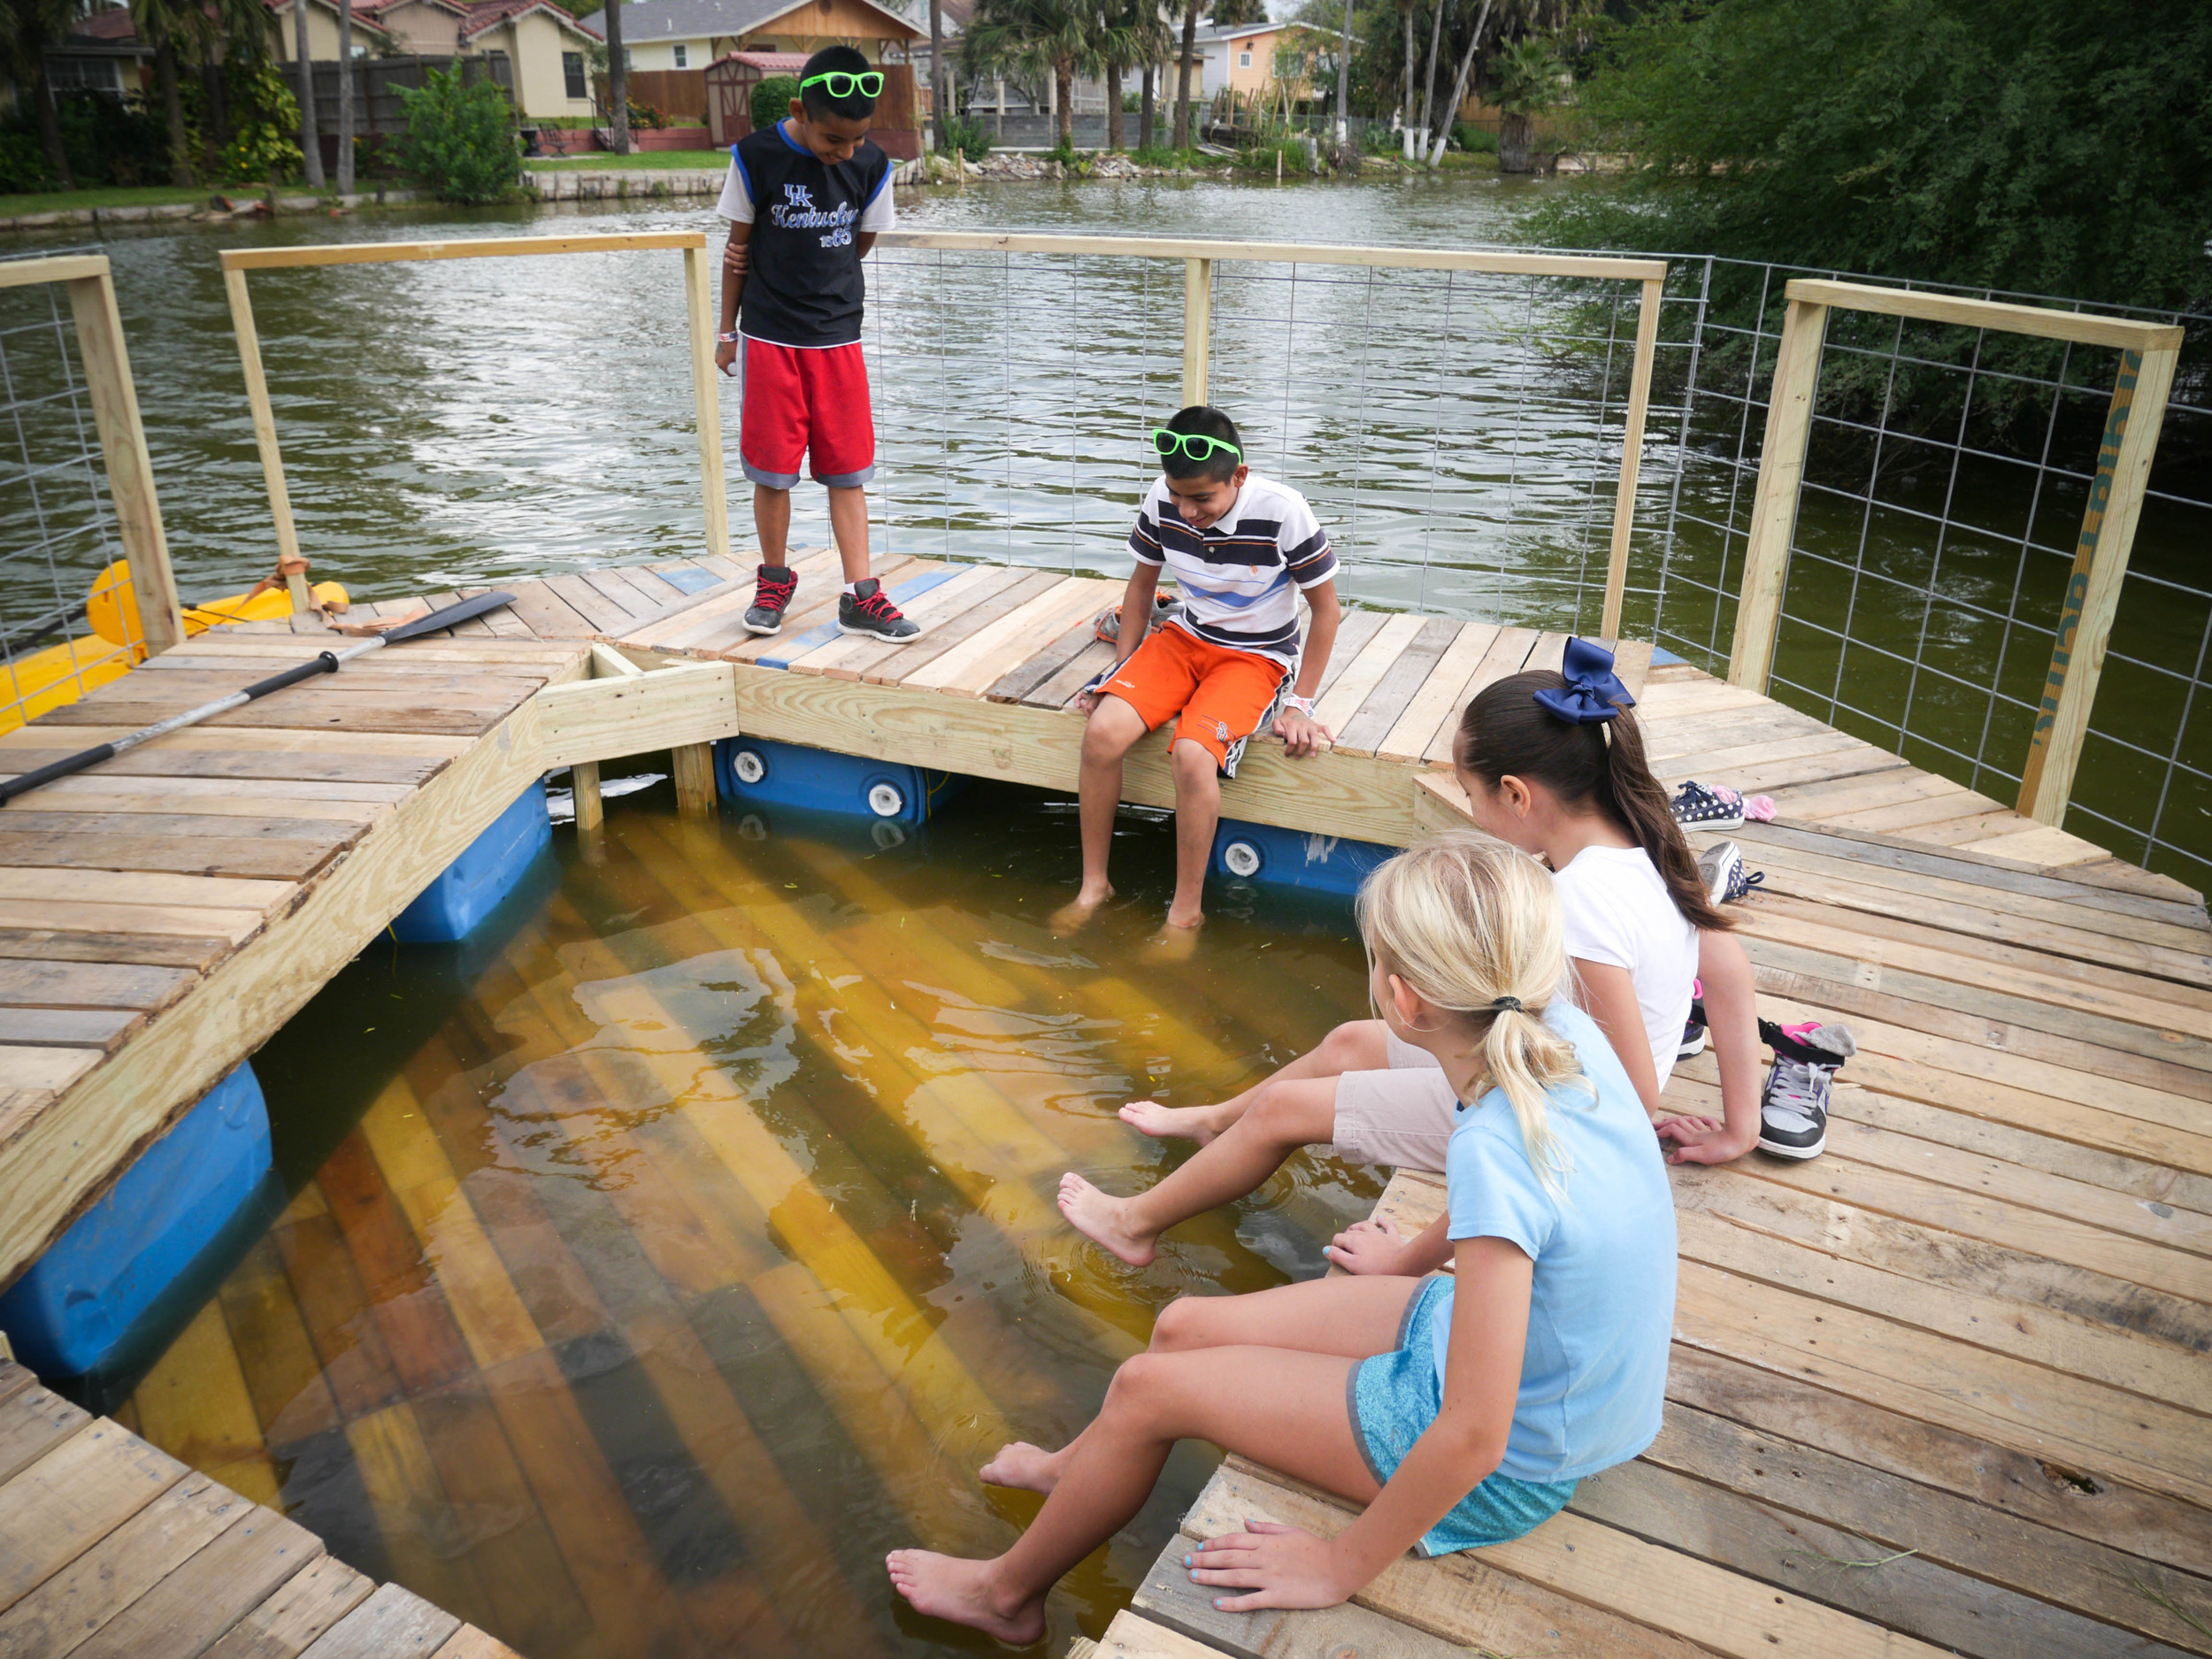 The design promotes people to engage with the water on a secondary underwater platform.